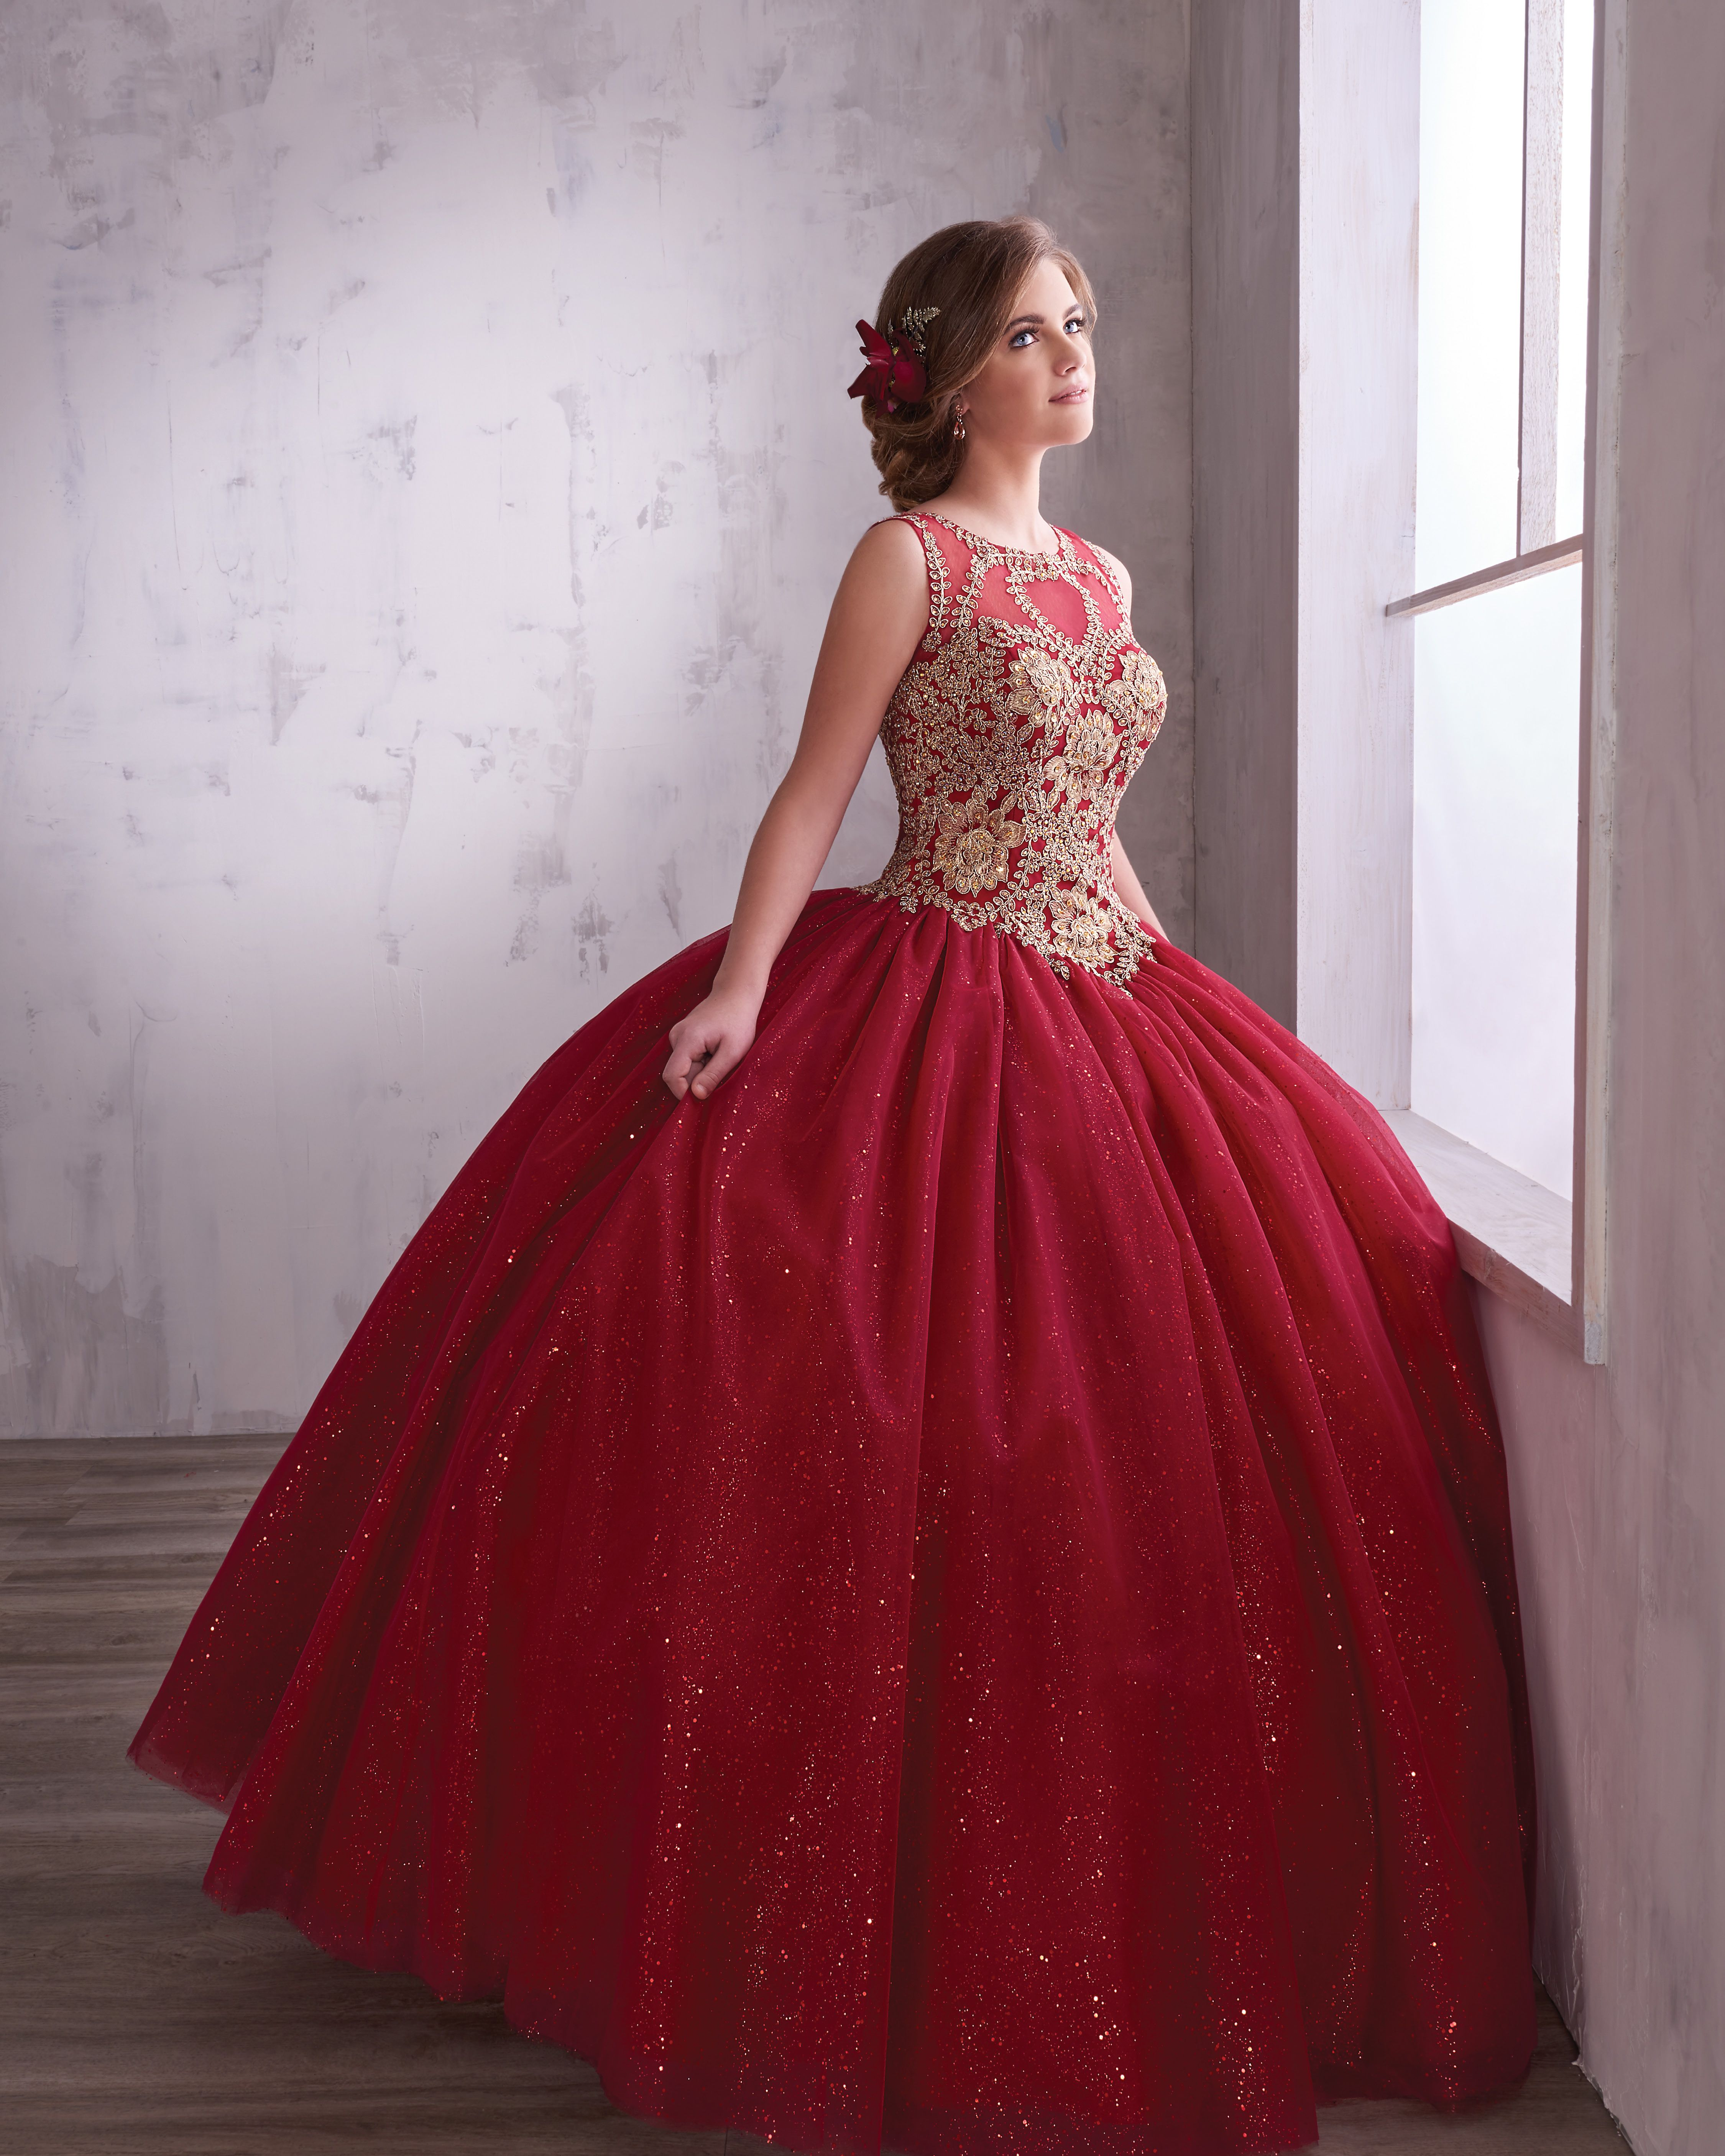 Princess Style 4q496 Sparkling Tulle Quinceanera Ball Gown With A Scoop Neck Bodice Embe Red Quinceanera Dresses Quinceanera Dresses Gold Quinceanera Dresses